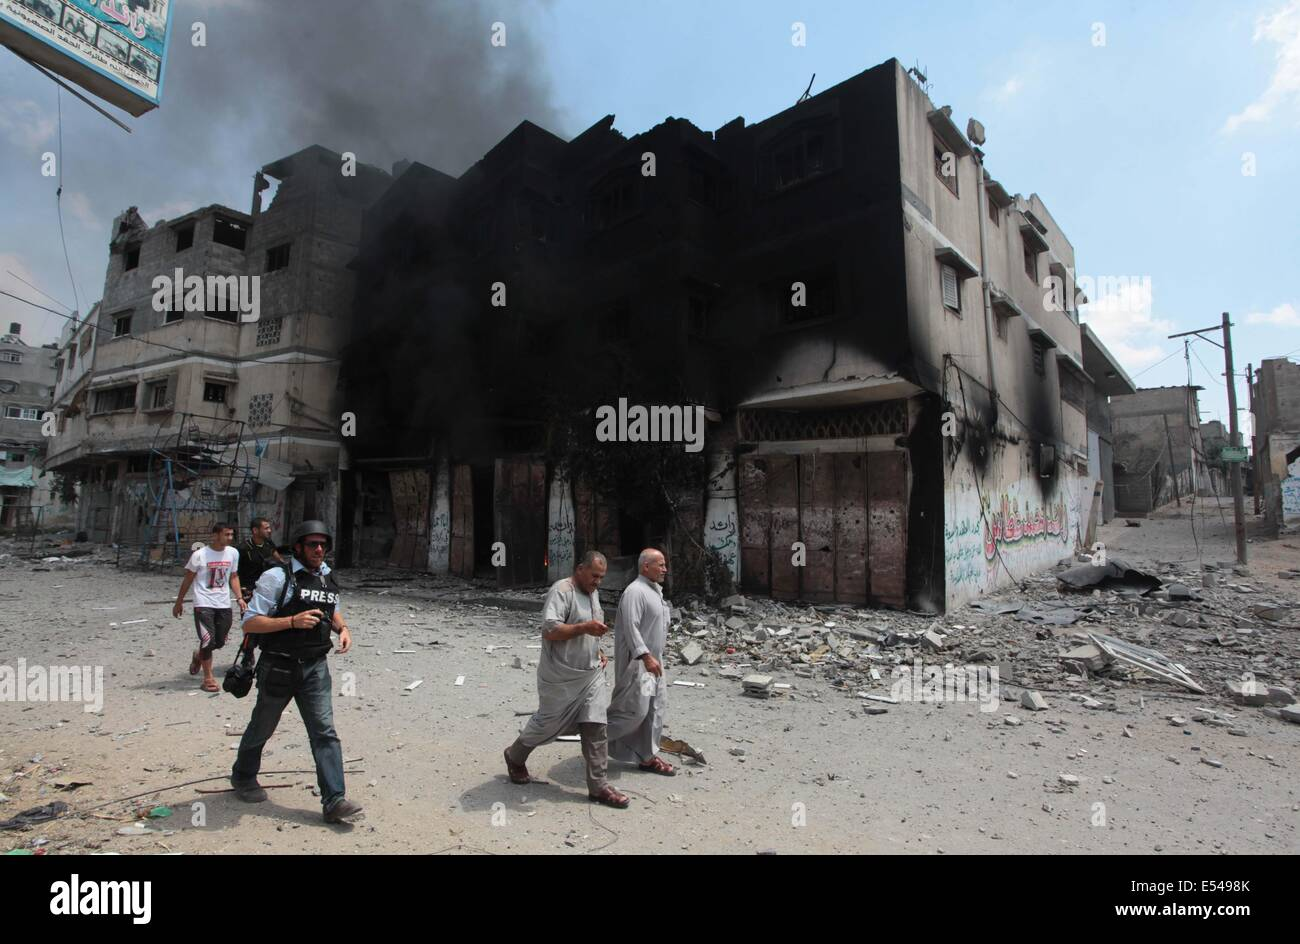 Gaza City, Gaza Strip, Palestinian Territory. 20th July, 2014. Palestinians flee to safety as the Israeli military - Stock Image